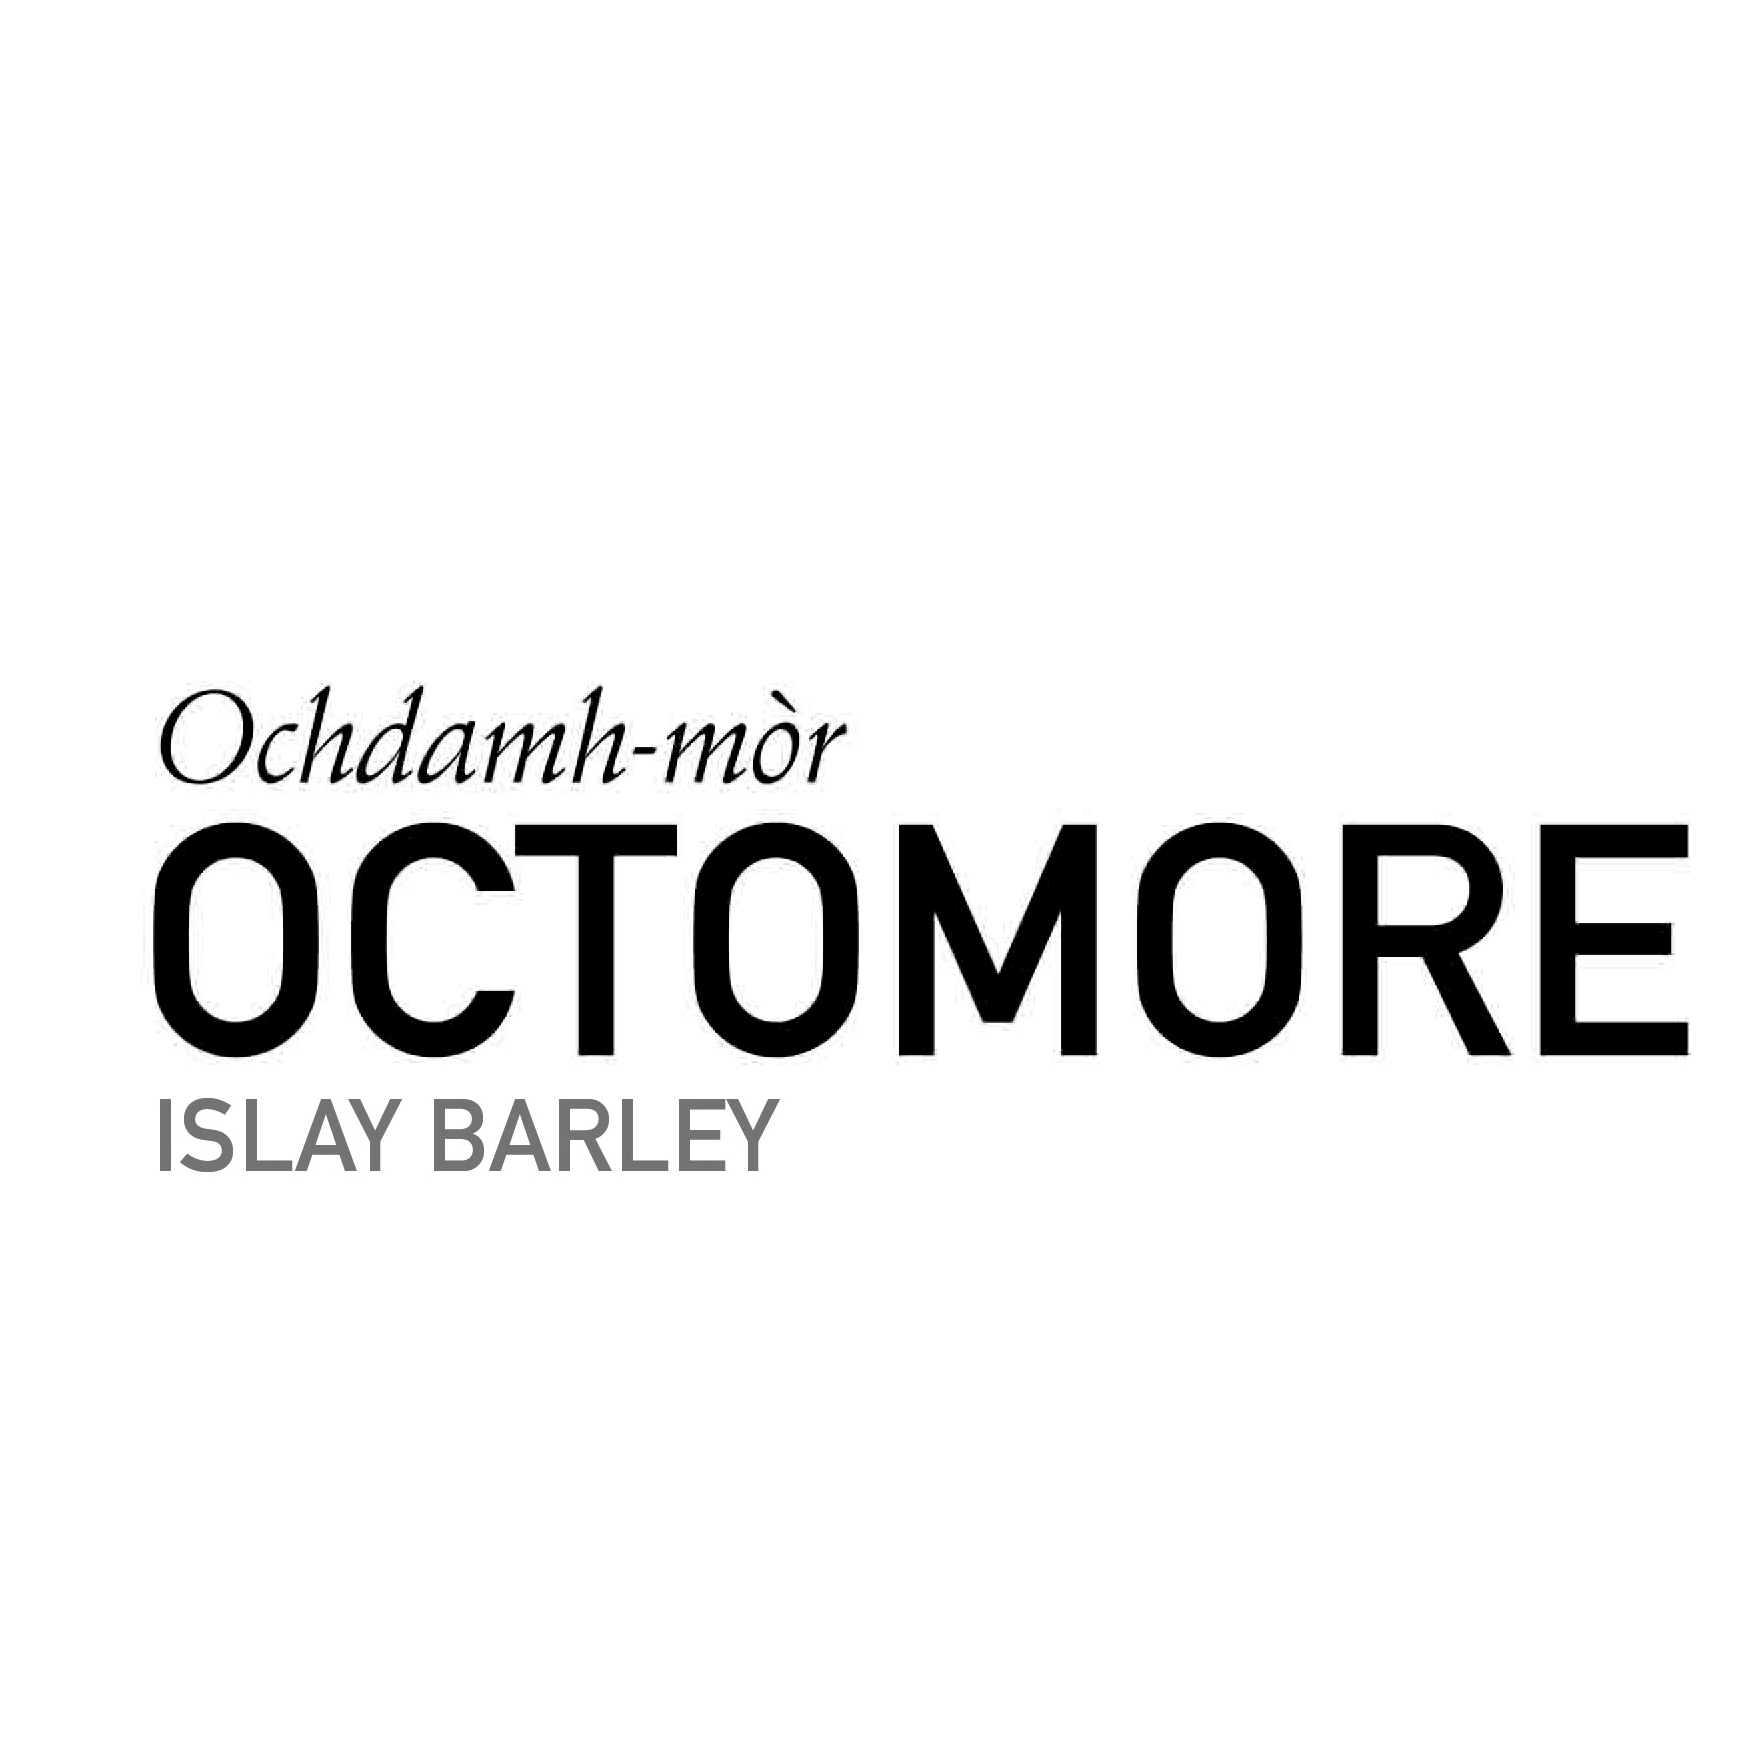 Octomore copy.jpg